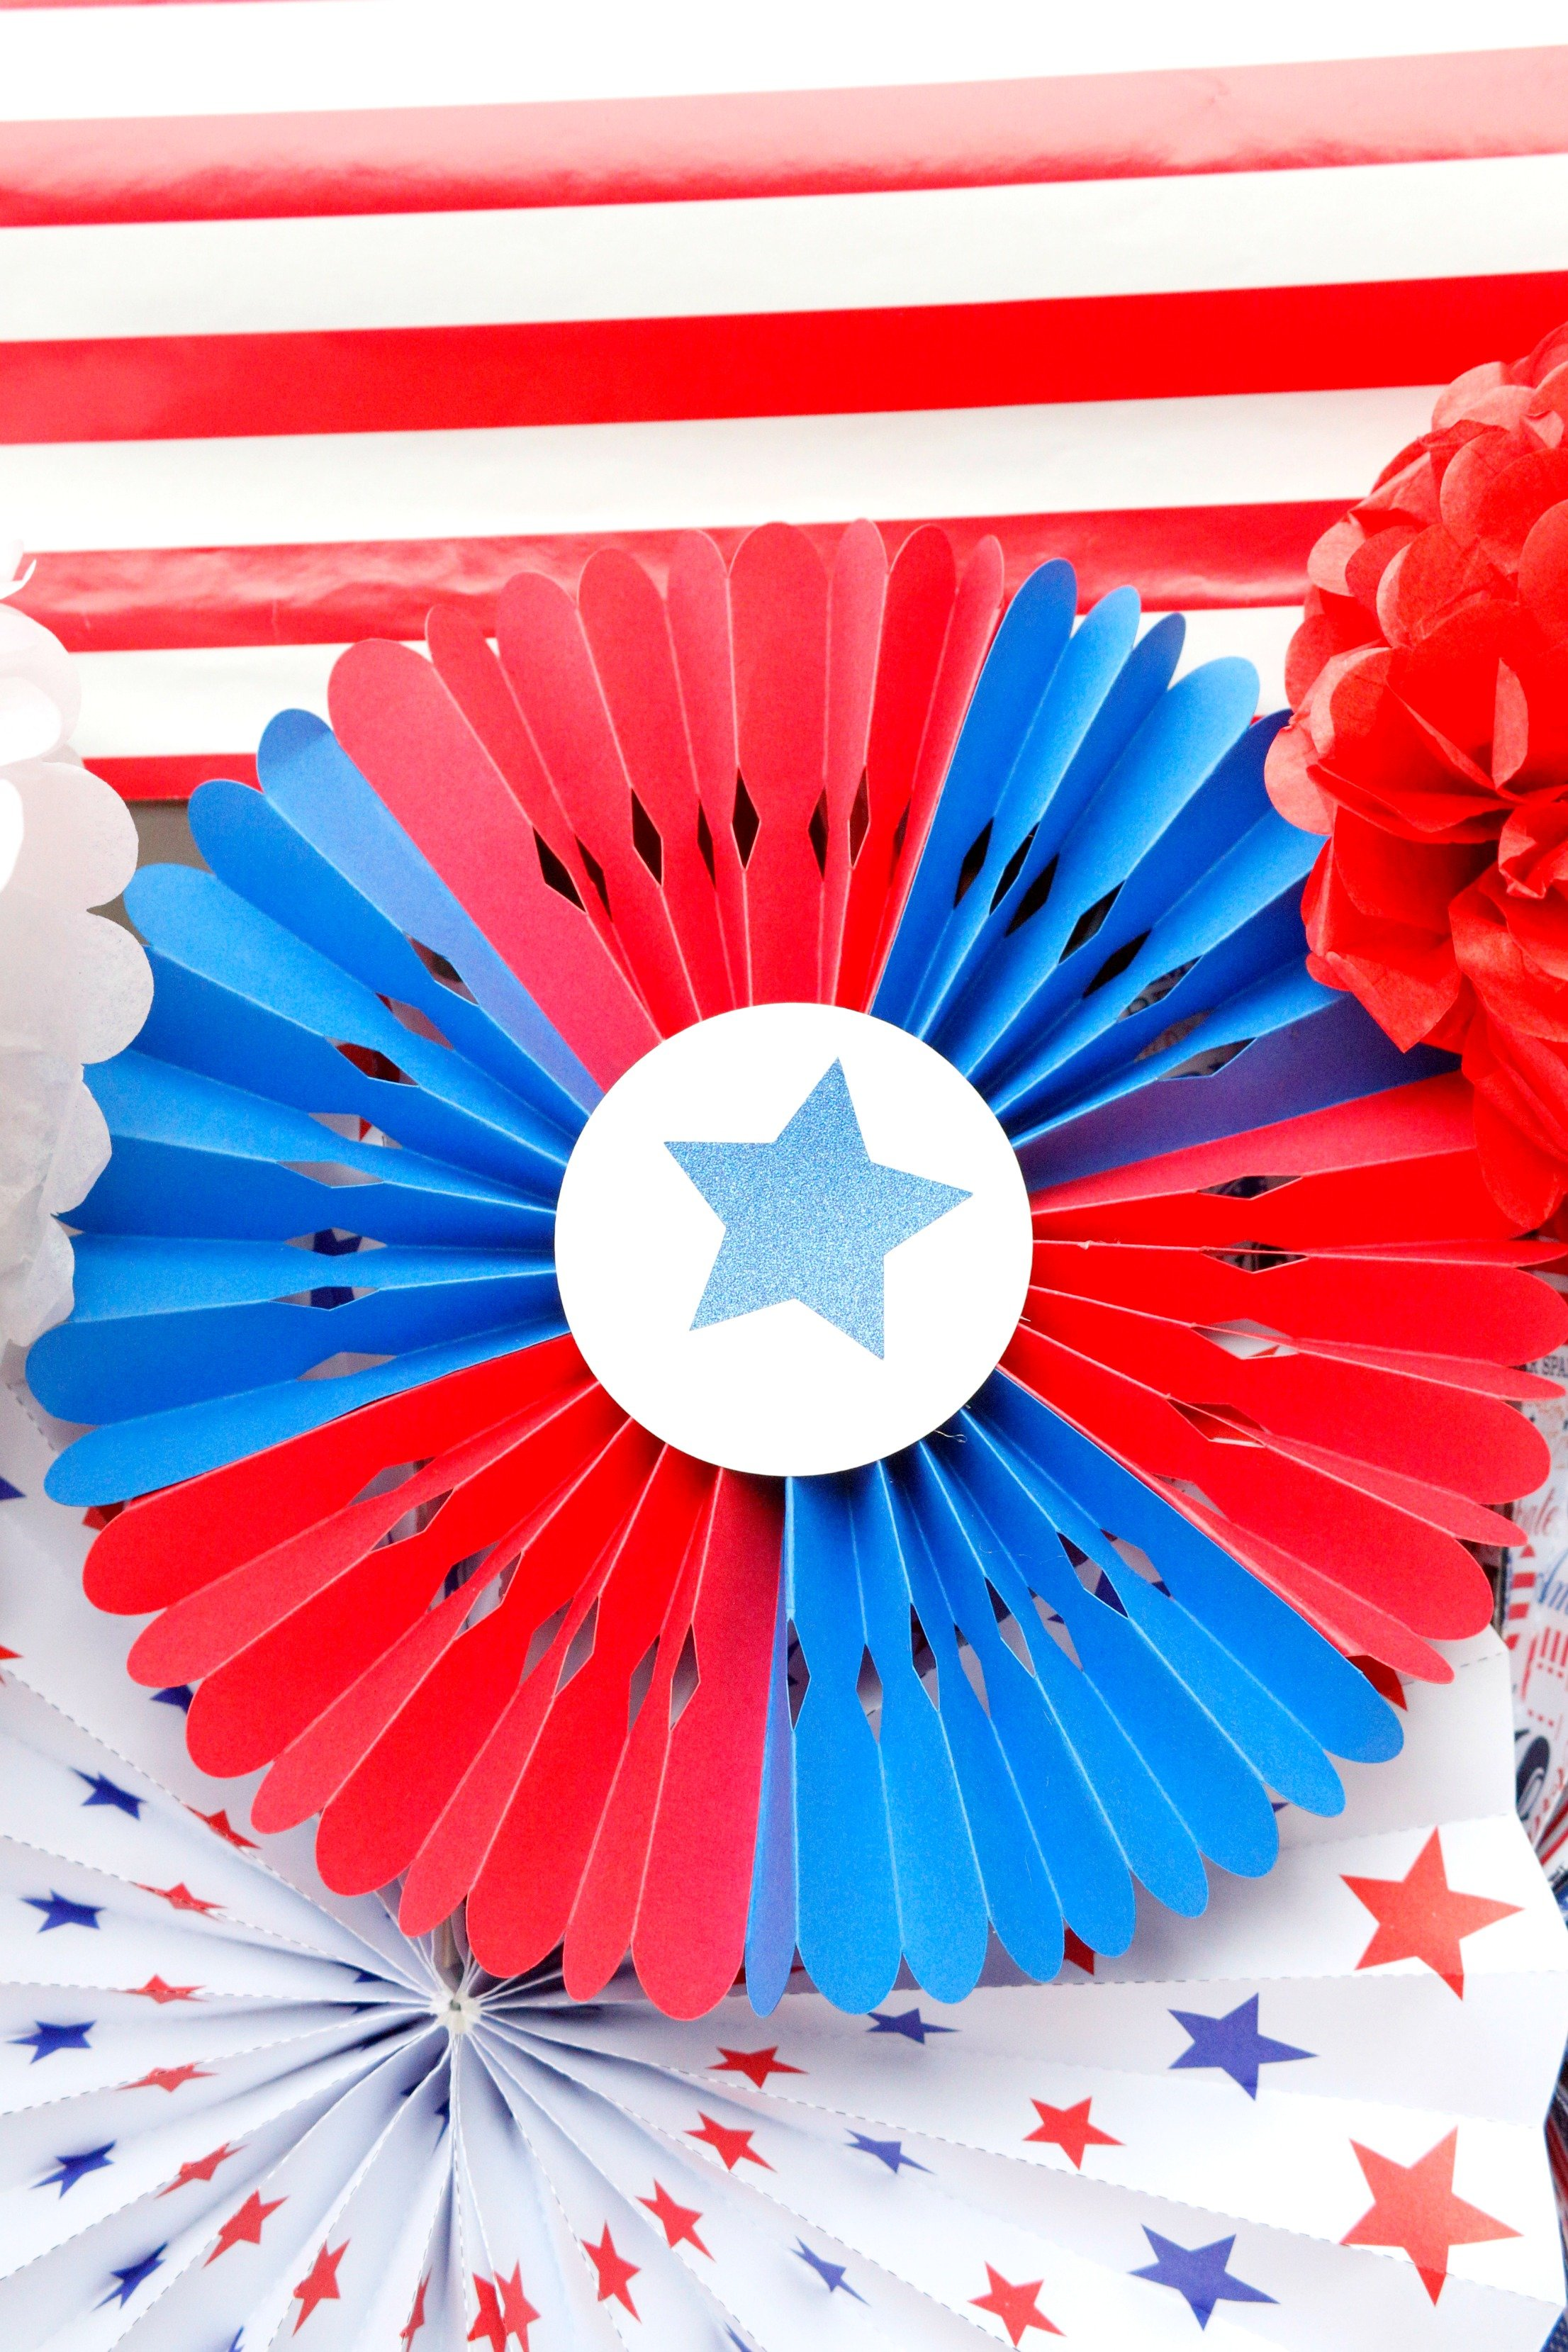 These patriotic rosettes will add a festive touch to your red white and blue patriotic party